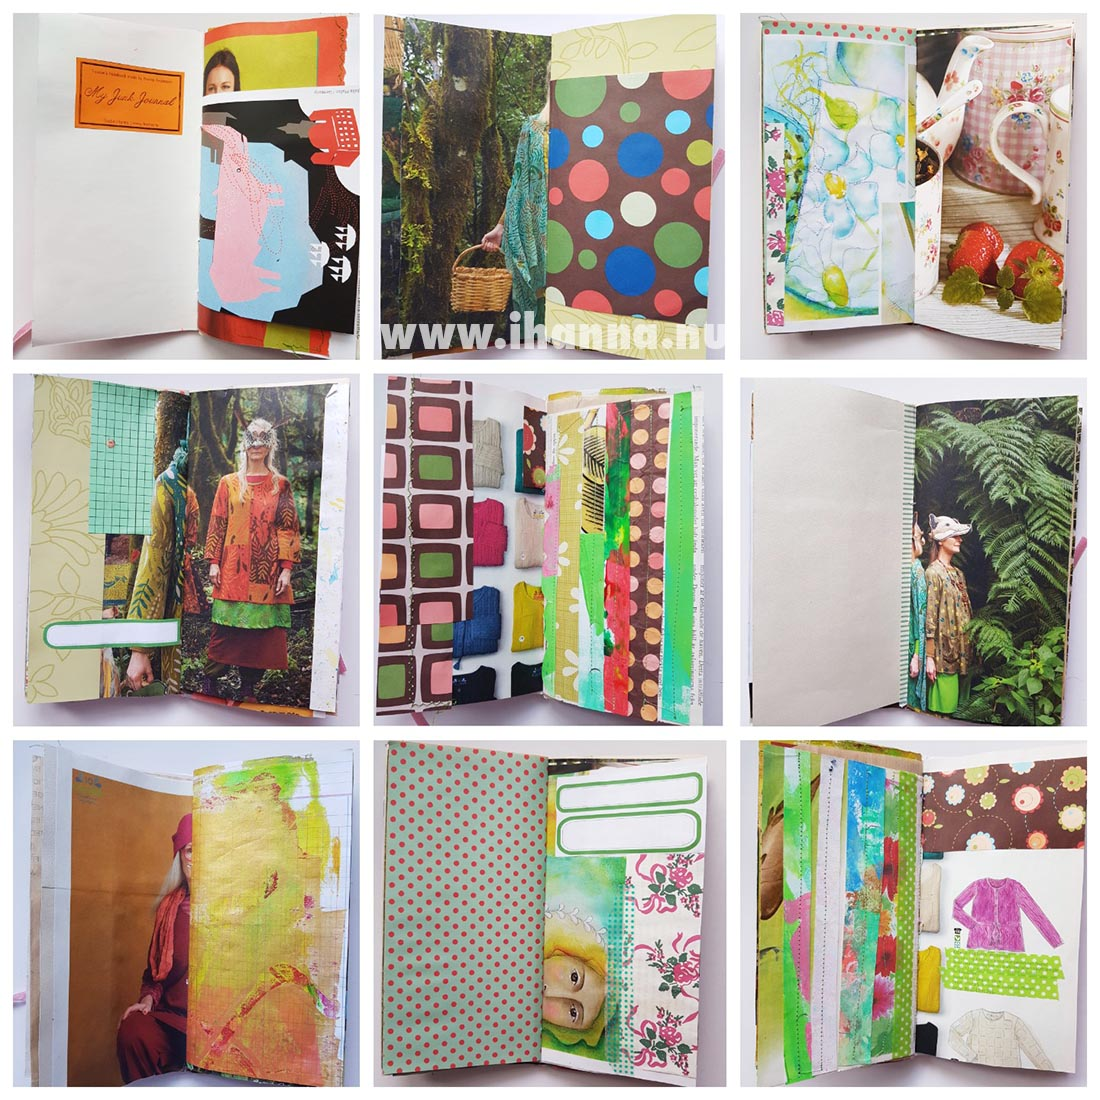 Some pages from Junk Journal no 006 #junkjournal